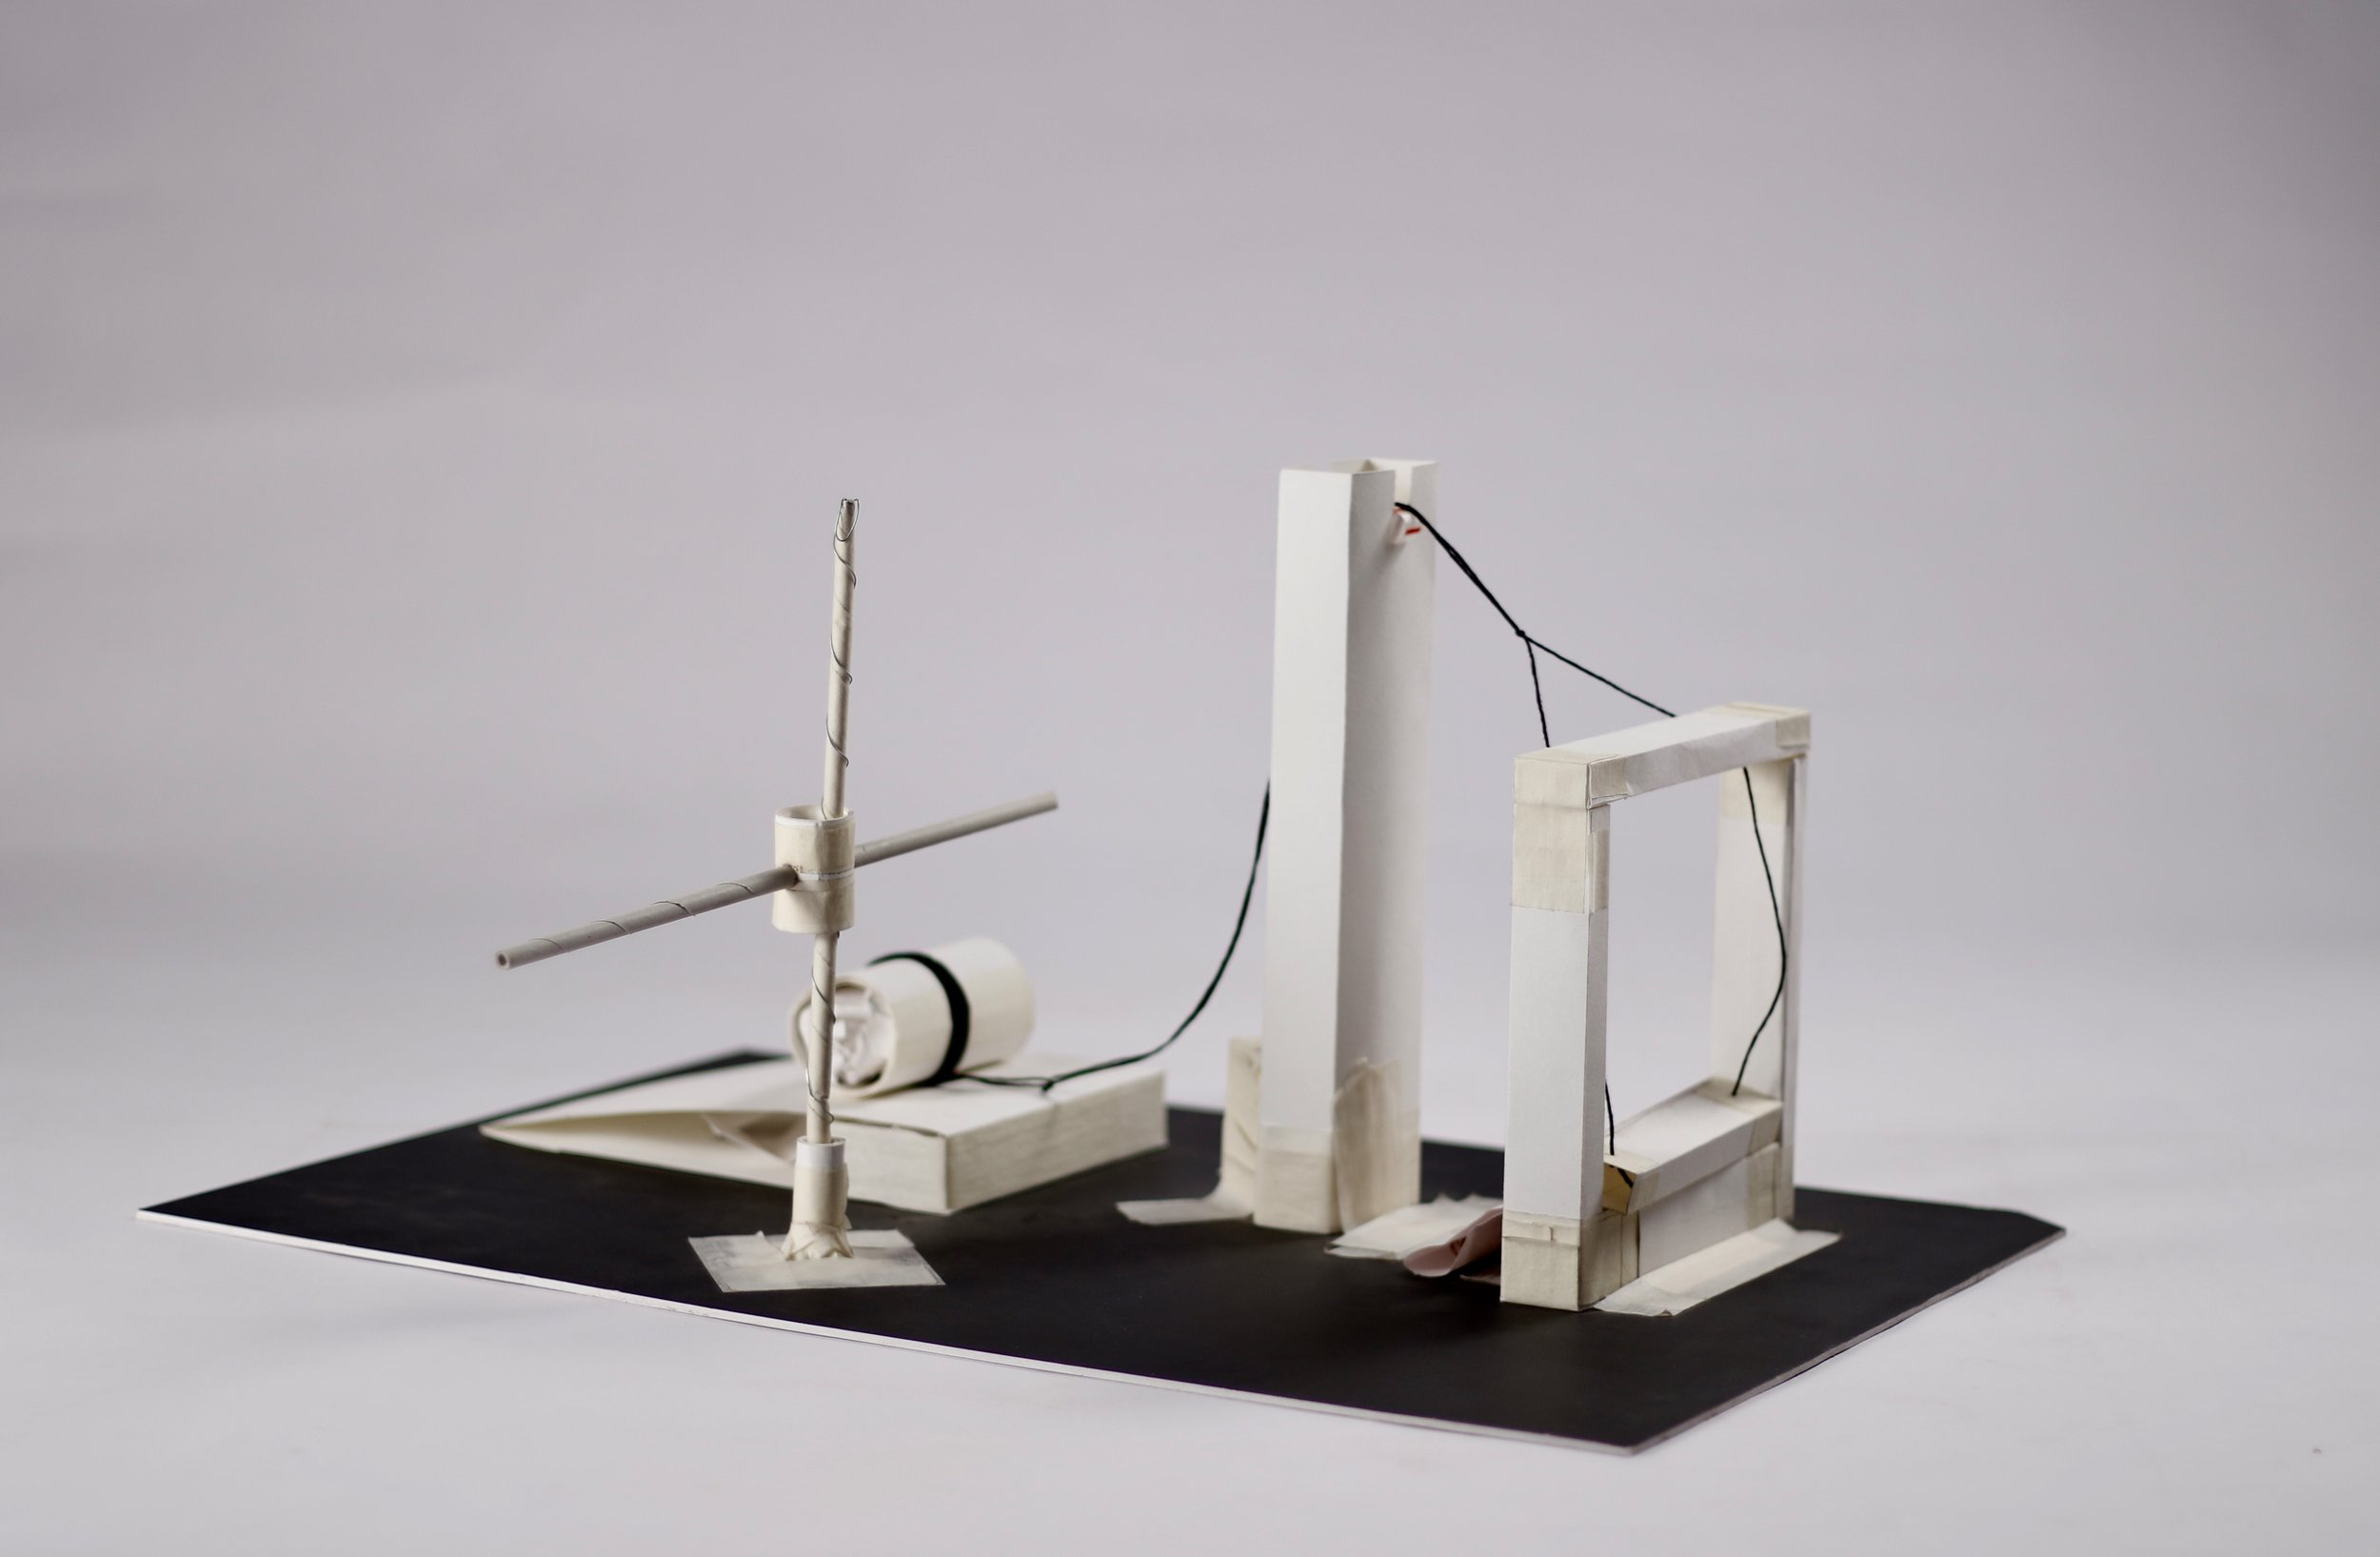 Rube Goldberg Mechanism   A Rube Goldberg machine is a deliberately complex contraption in which a series of devices that perform simple tasks are linked together to produce a domino effect in which activating one device triggers the next device in the sequence.   Medium:  Paper